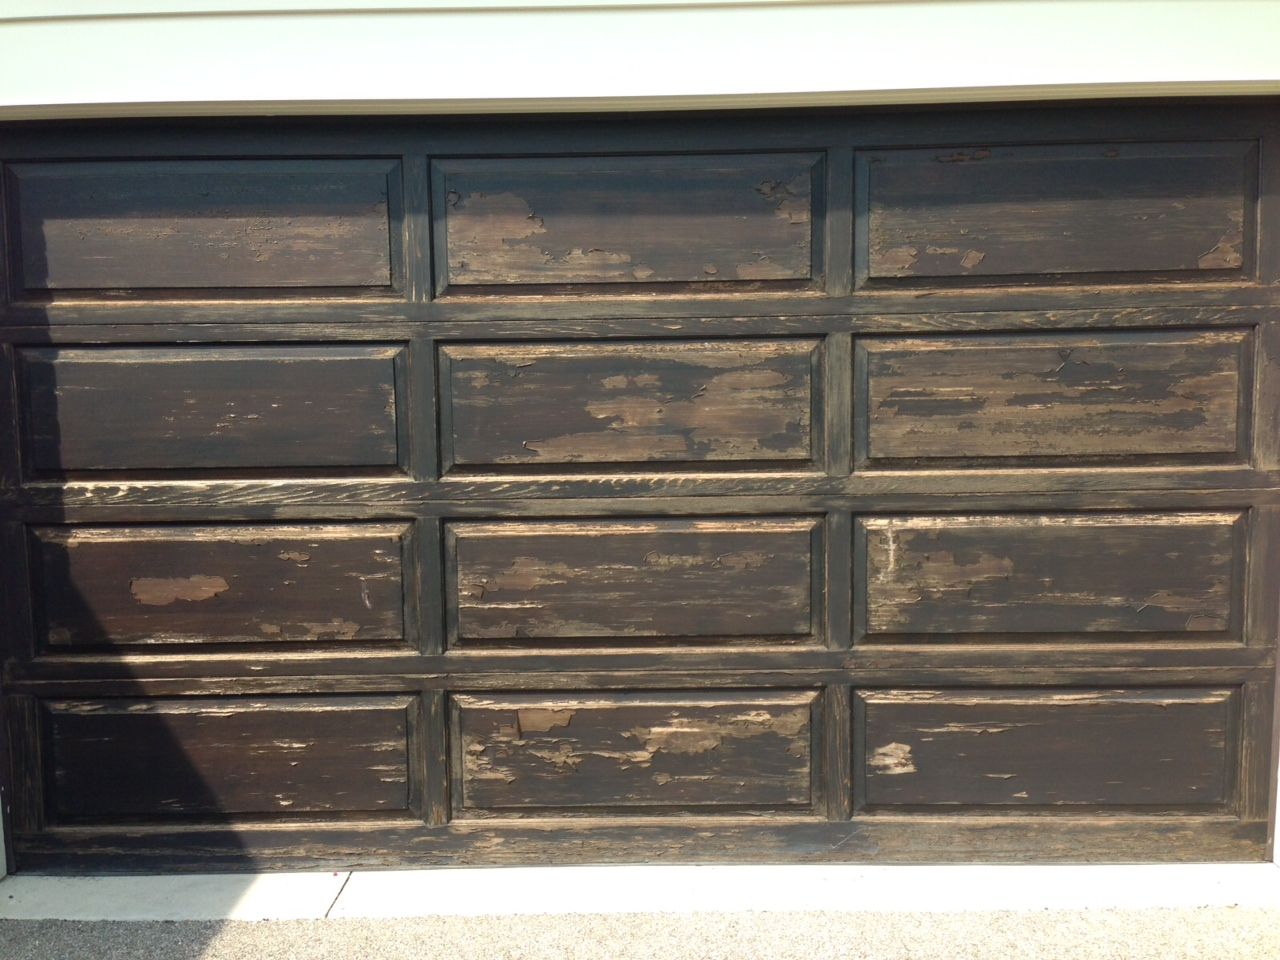 High Quality Failed Coating On Wood Garage Door